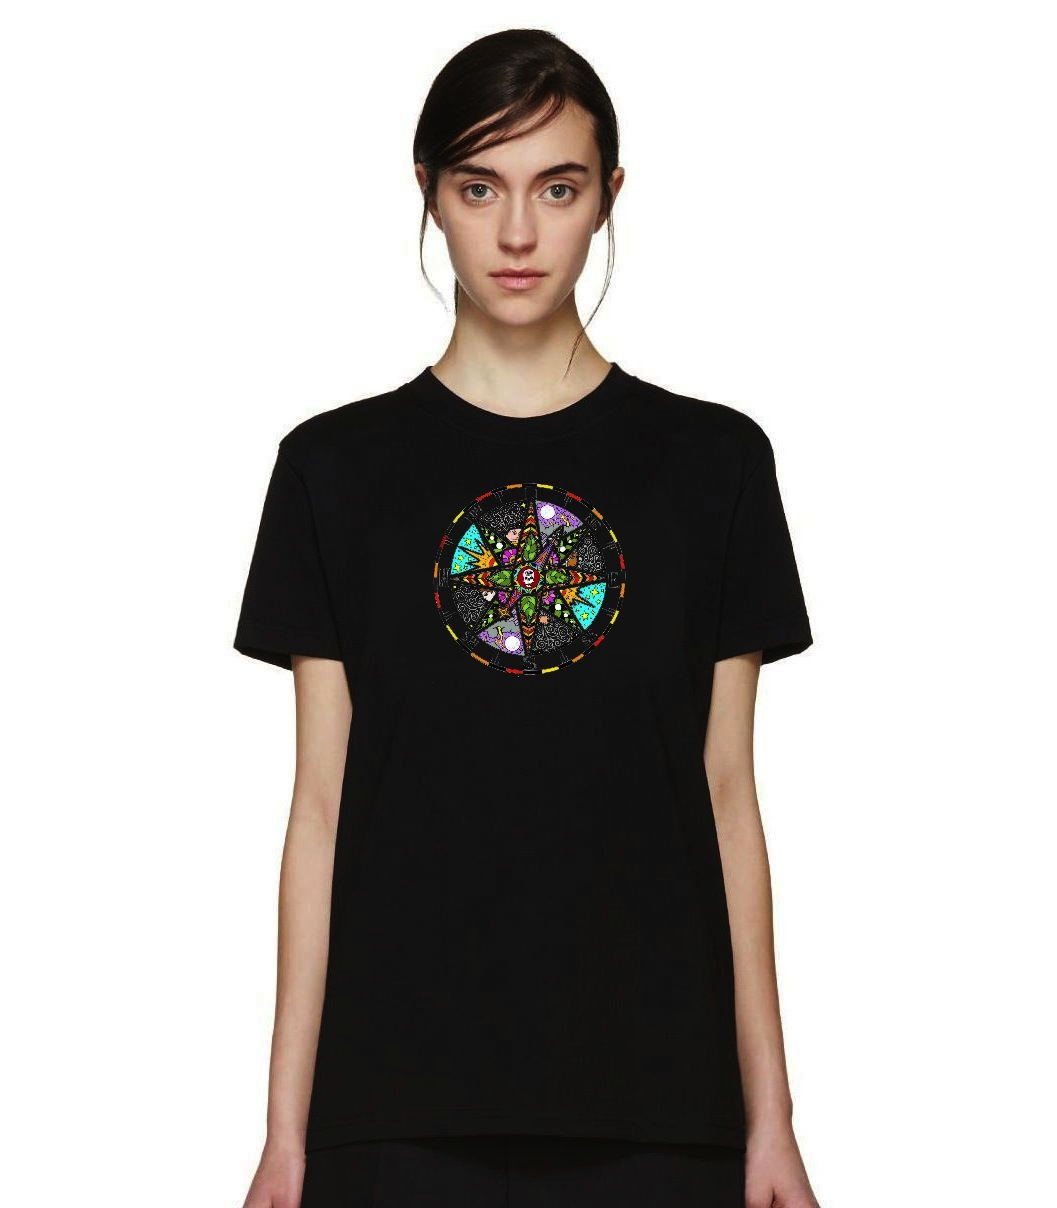 15-Off-White-Women-s-Black-Embroidered-T-Shirt-1 copy.jpg